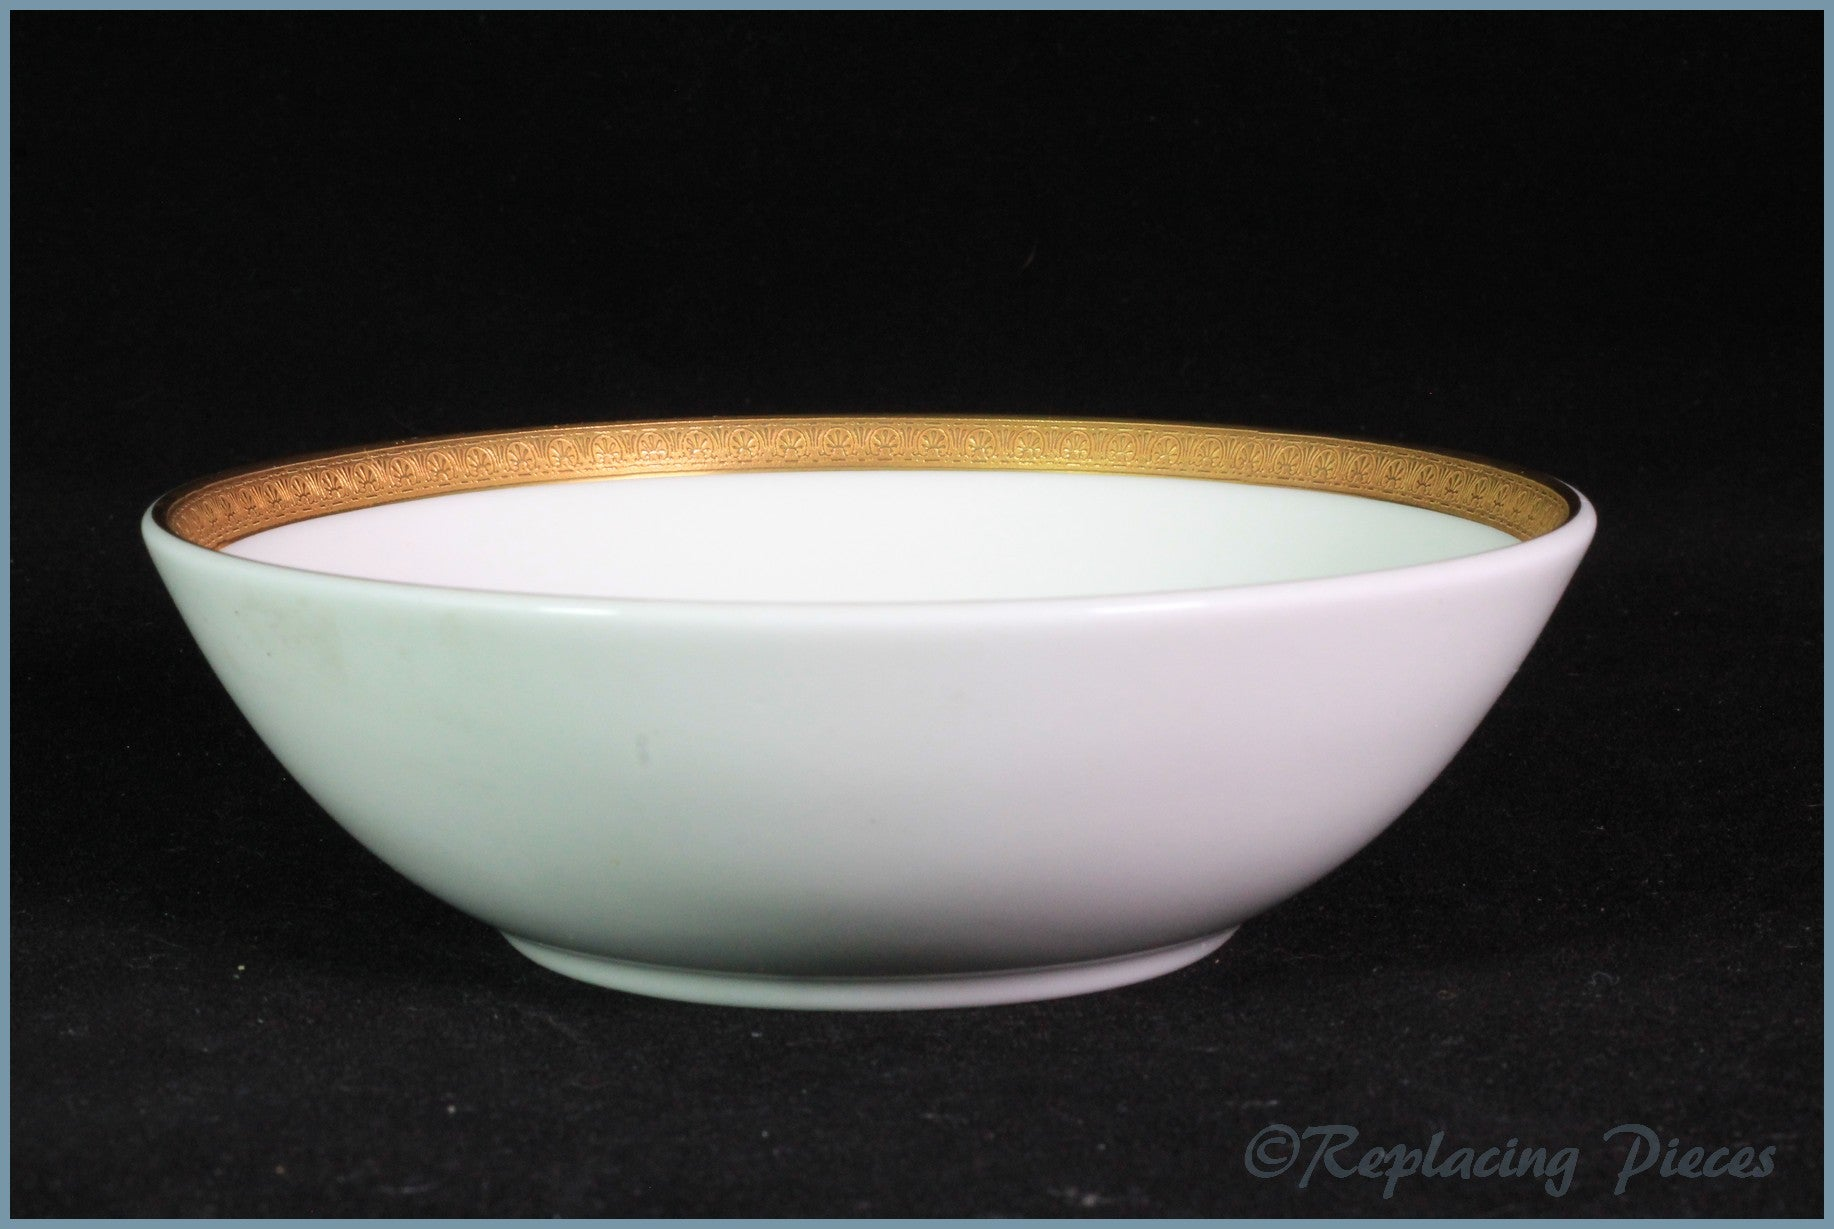 Royal Doulton - Royal Gold (H4980) - Fruit Saucer